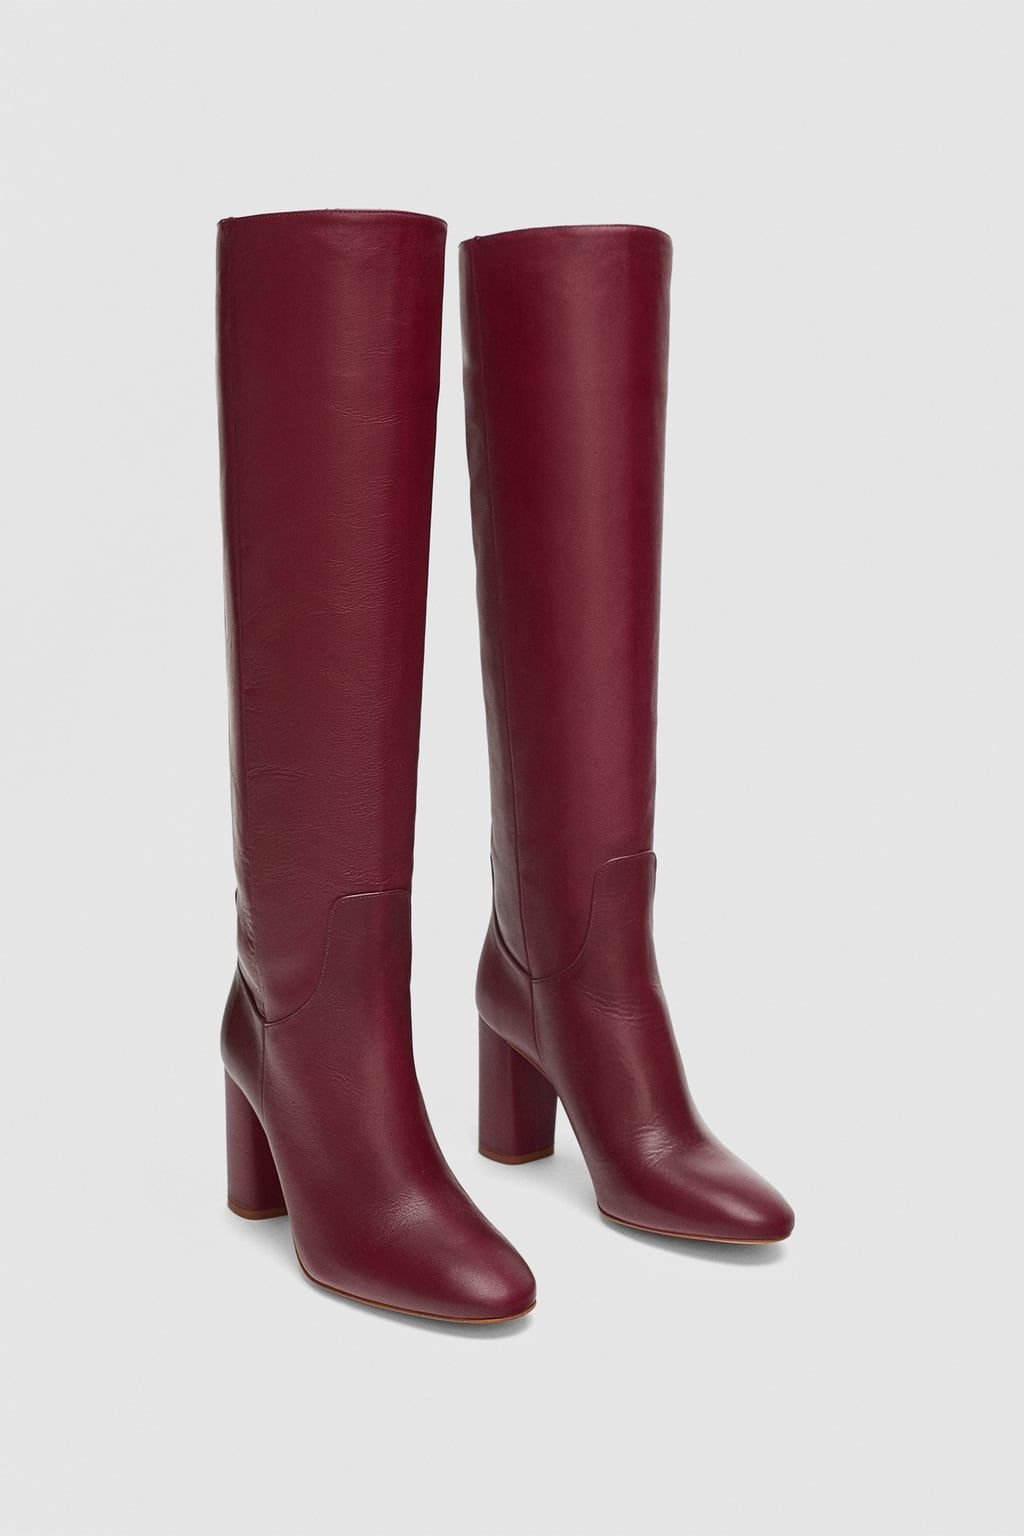 d4584b0759f Image 1 of HIGH HEELED LEATHER BOOTS from Zara